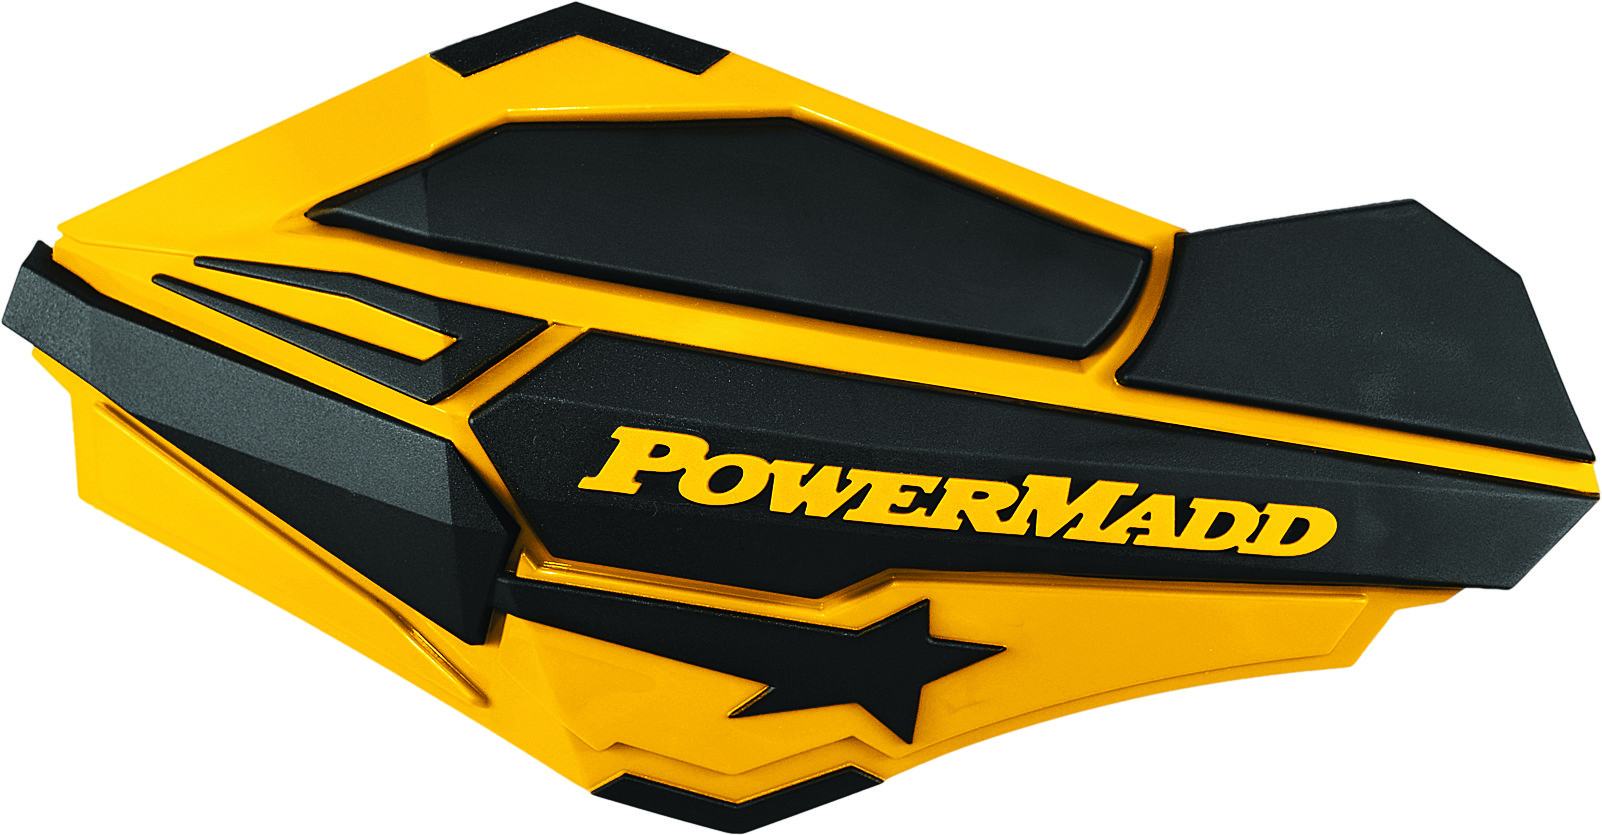 Sentinal Handguards (Ski-Doo Yellow/Black)